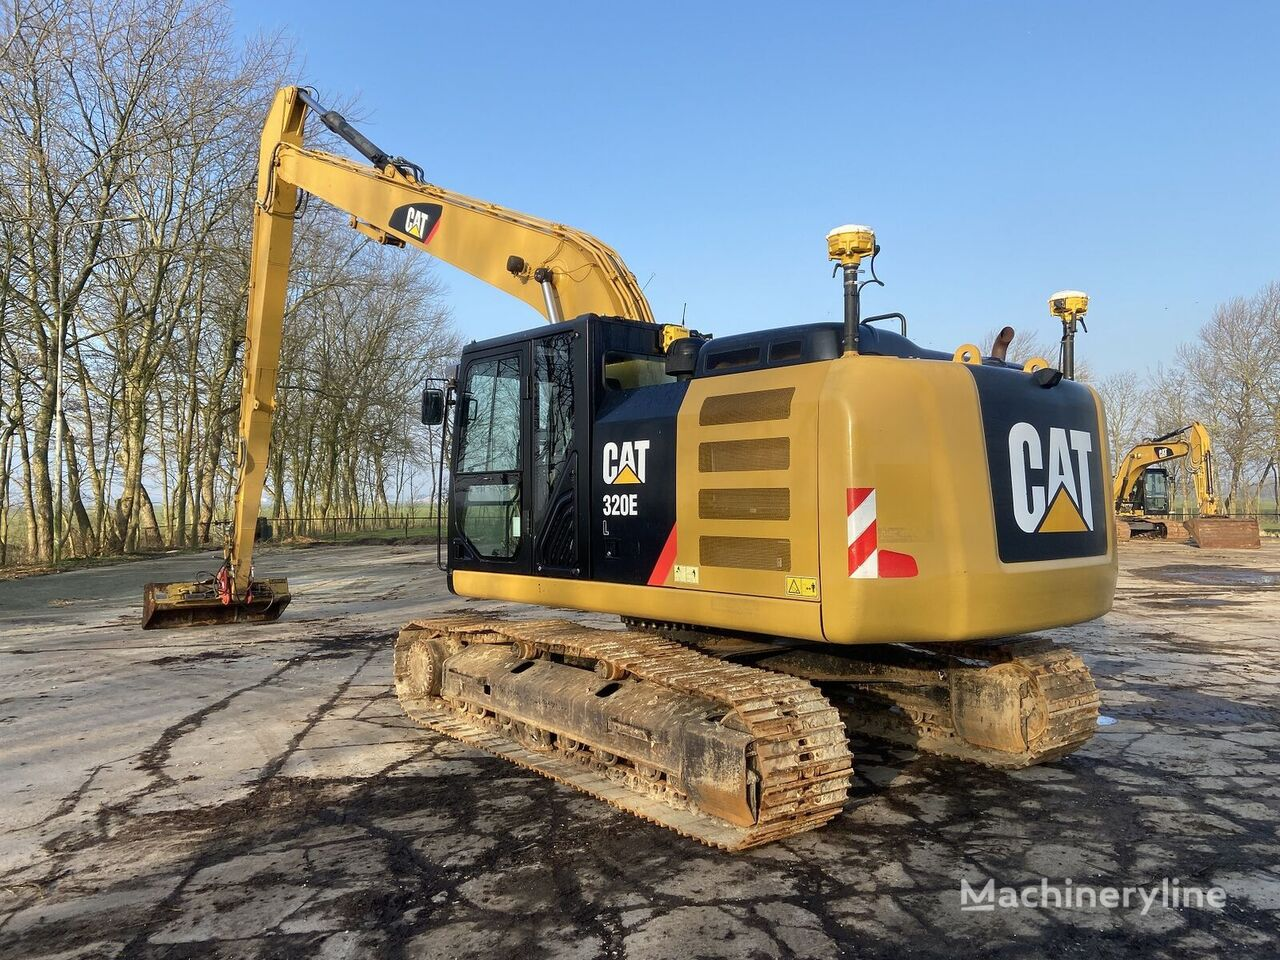 CATERPILLAR 320-EL  tracked excavator